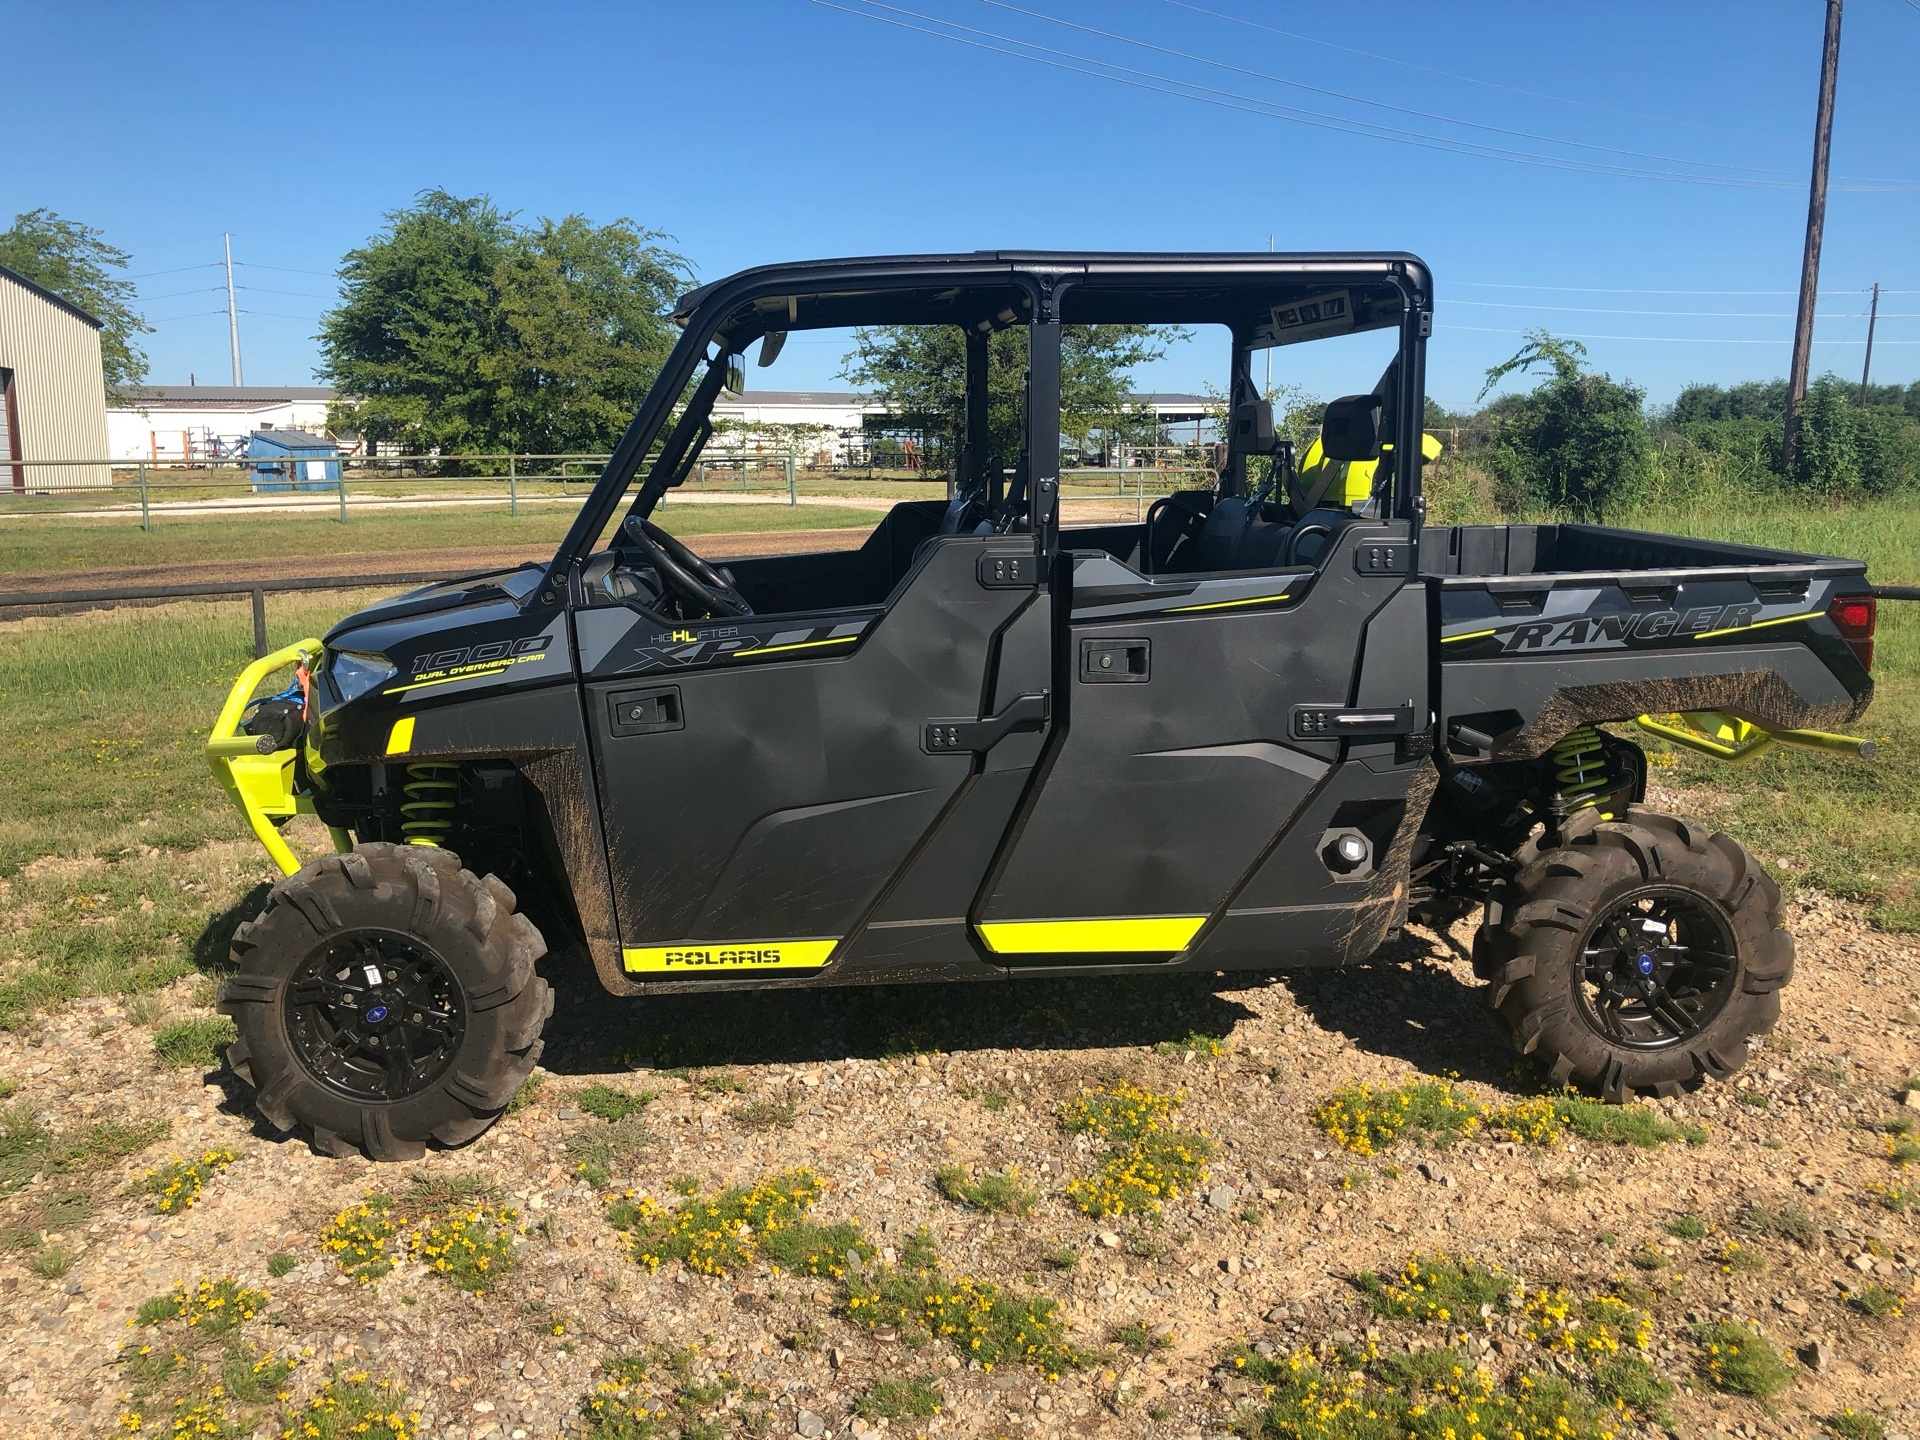 2020 Polaris Ranger Crew XP 1000 High Lifter Edition in Mount Pleasant, Texas - Photo 2